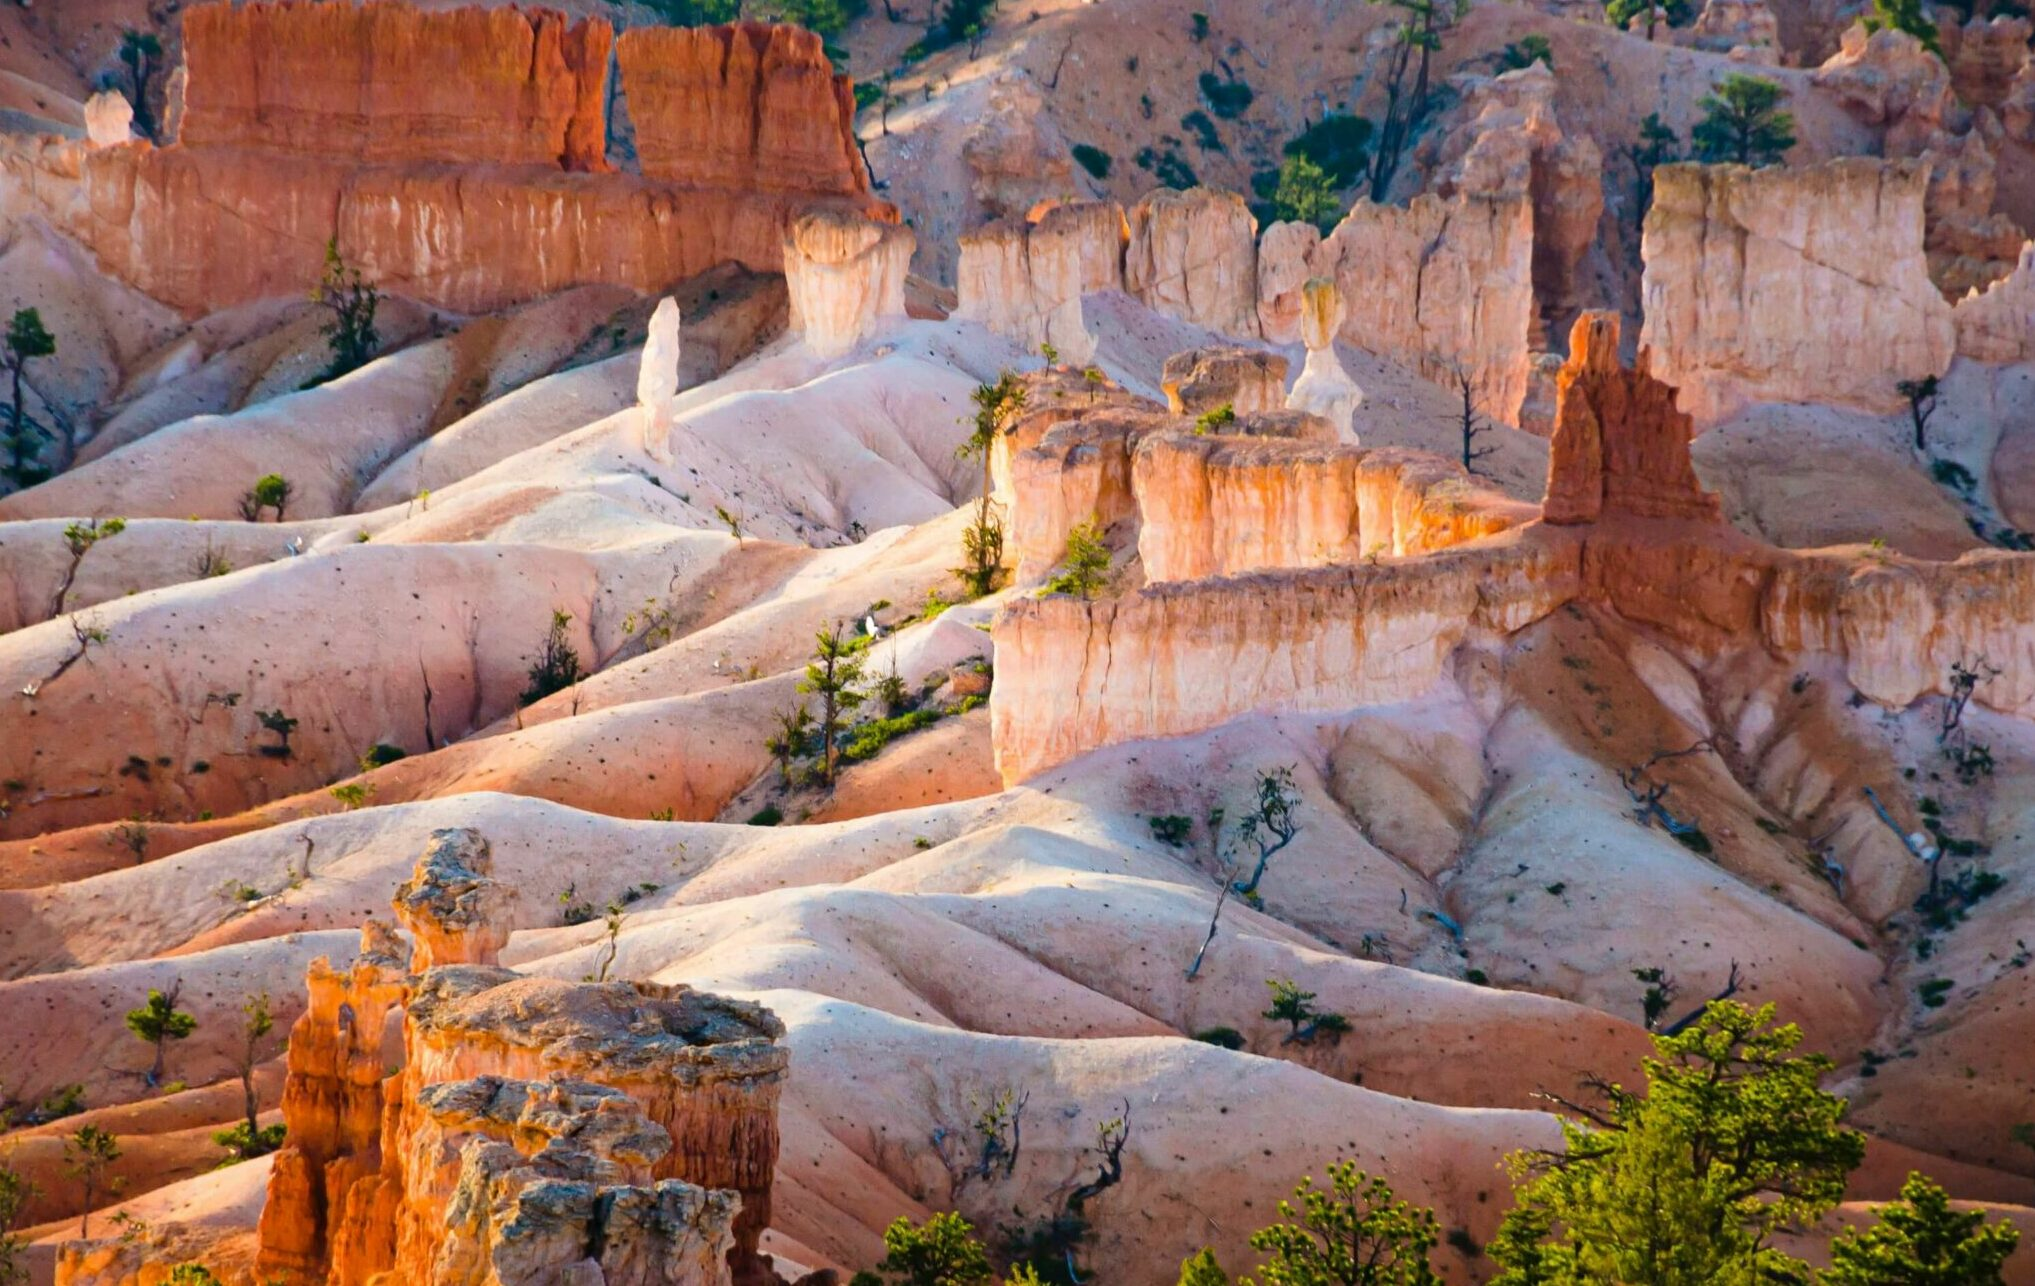 lava flowing rock formations of Bryce Canyon National Park